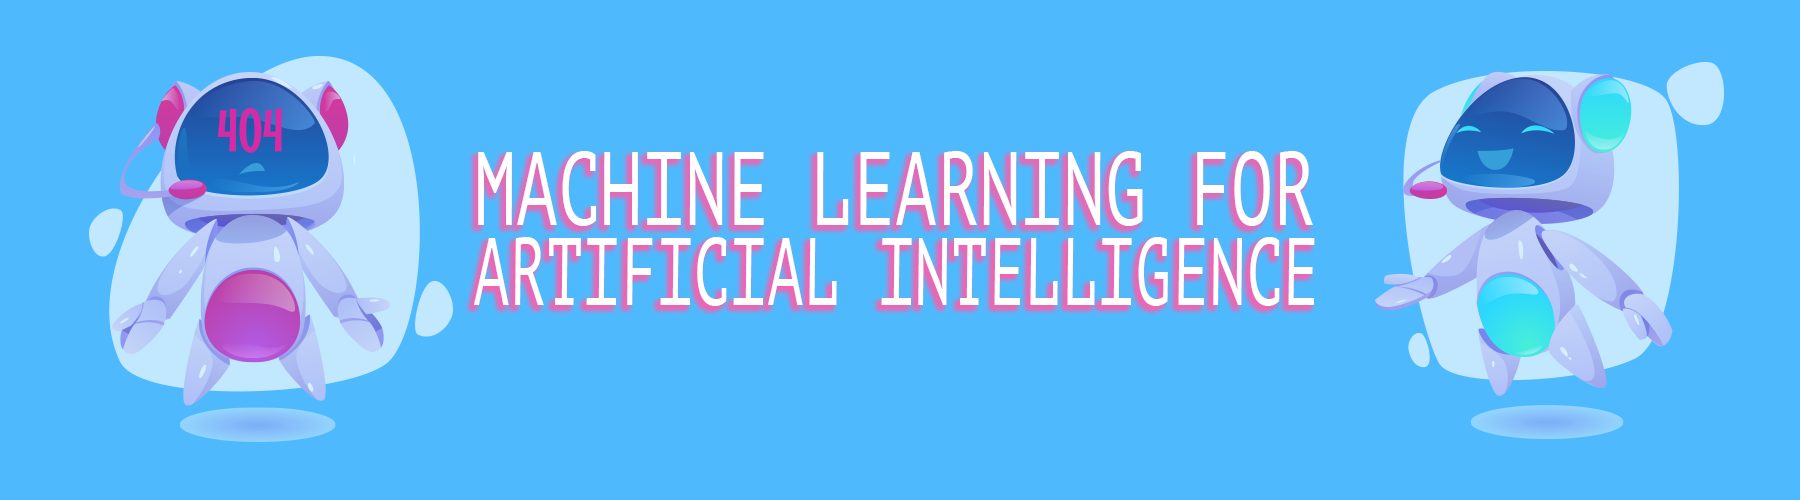 Machine Learning For Artificial Intelligence